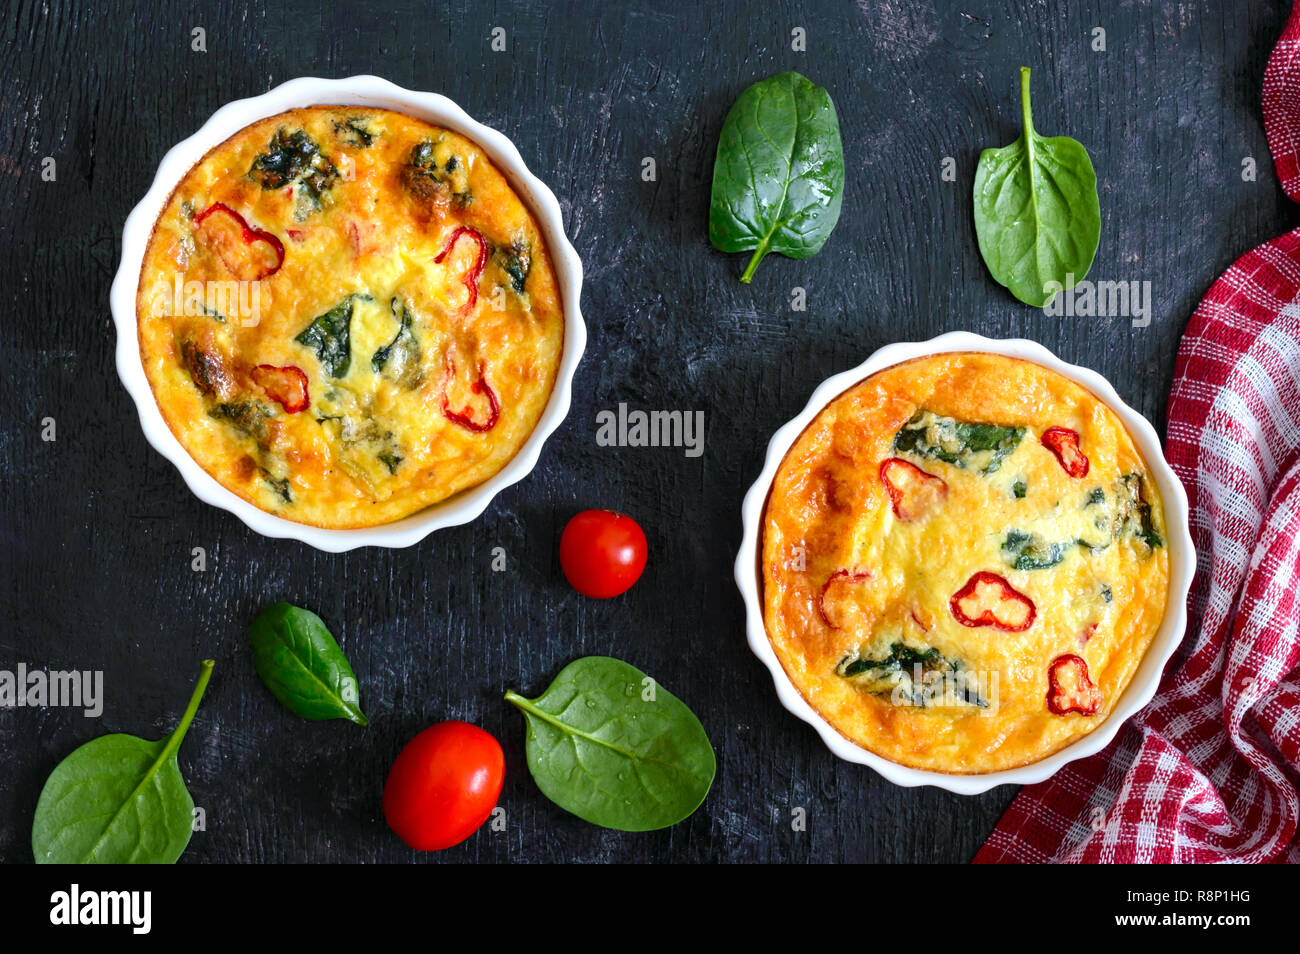 Frittata with fresh vegetables and spinach. Italian omelet in ceramic forms on a black background. Top view. - Stock Image